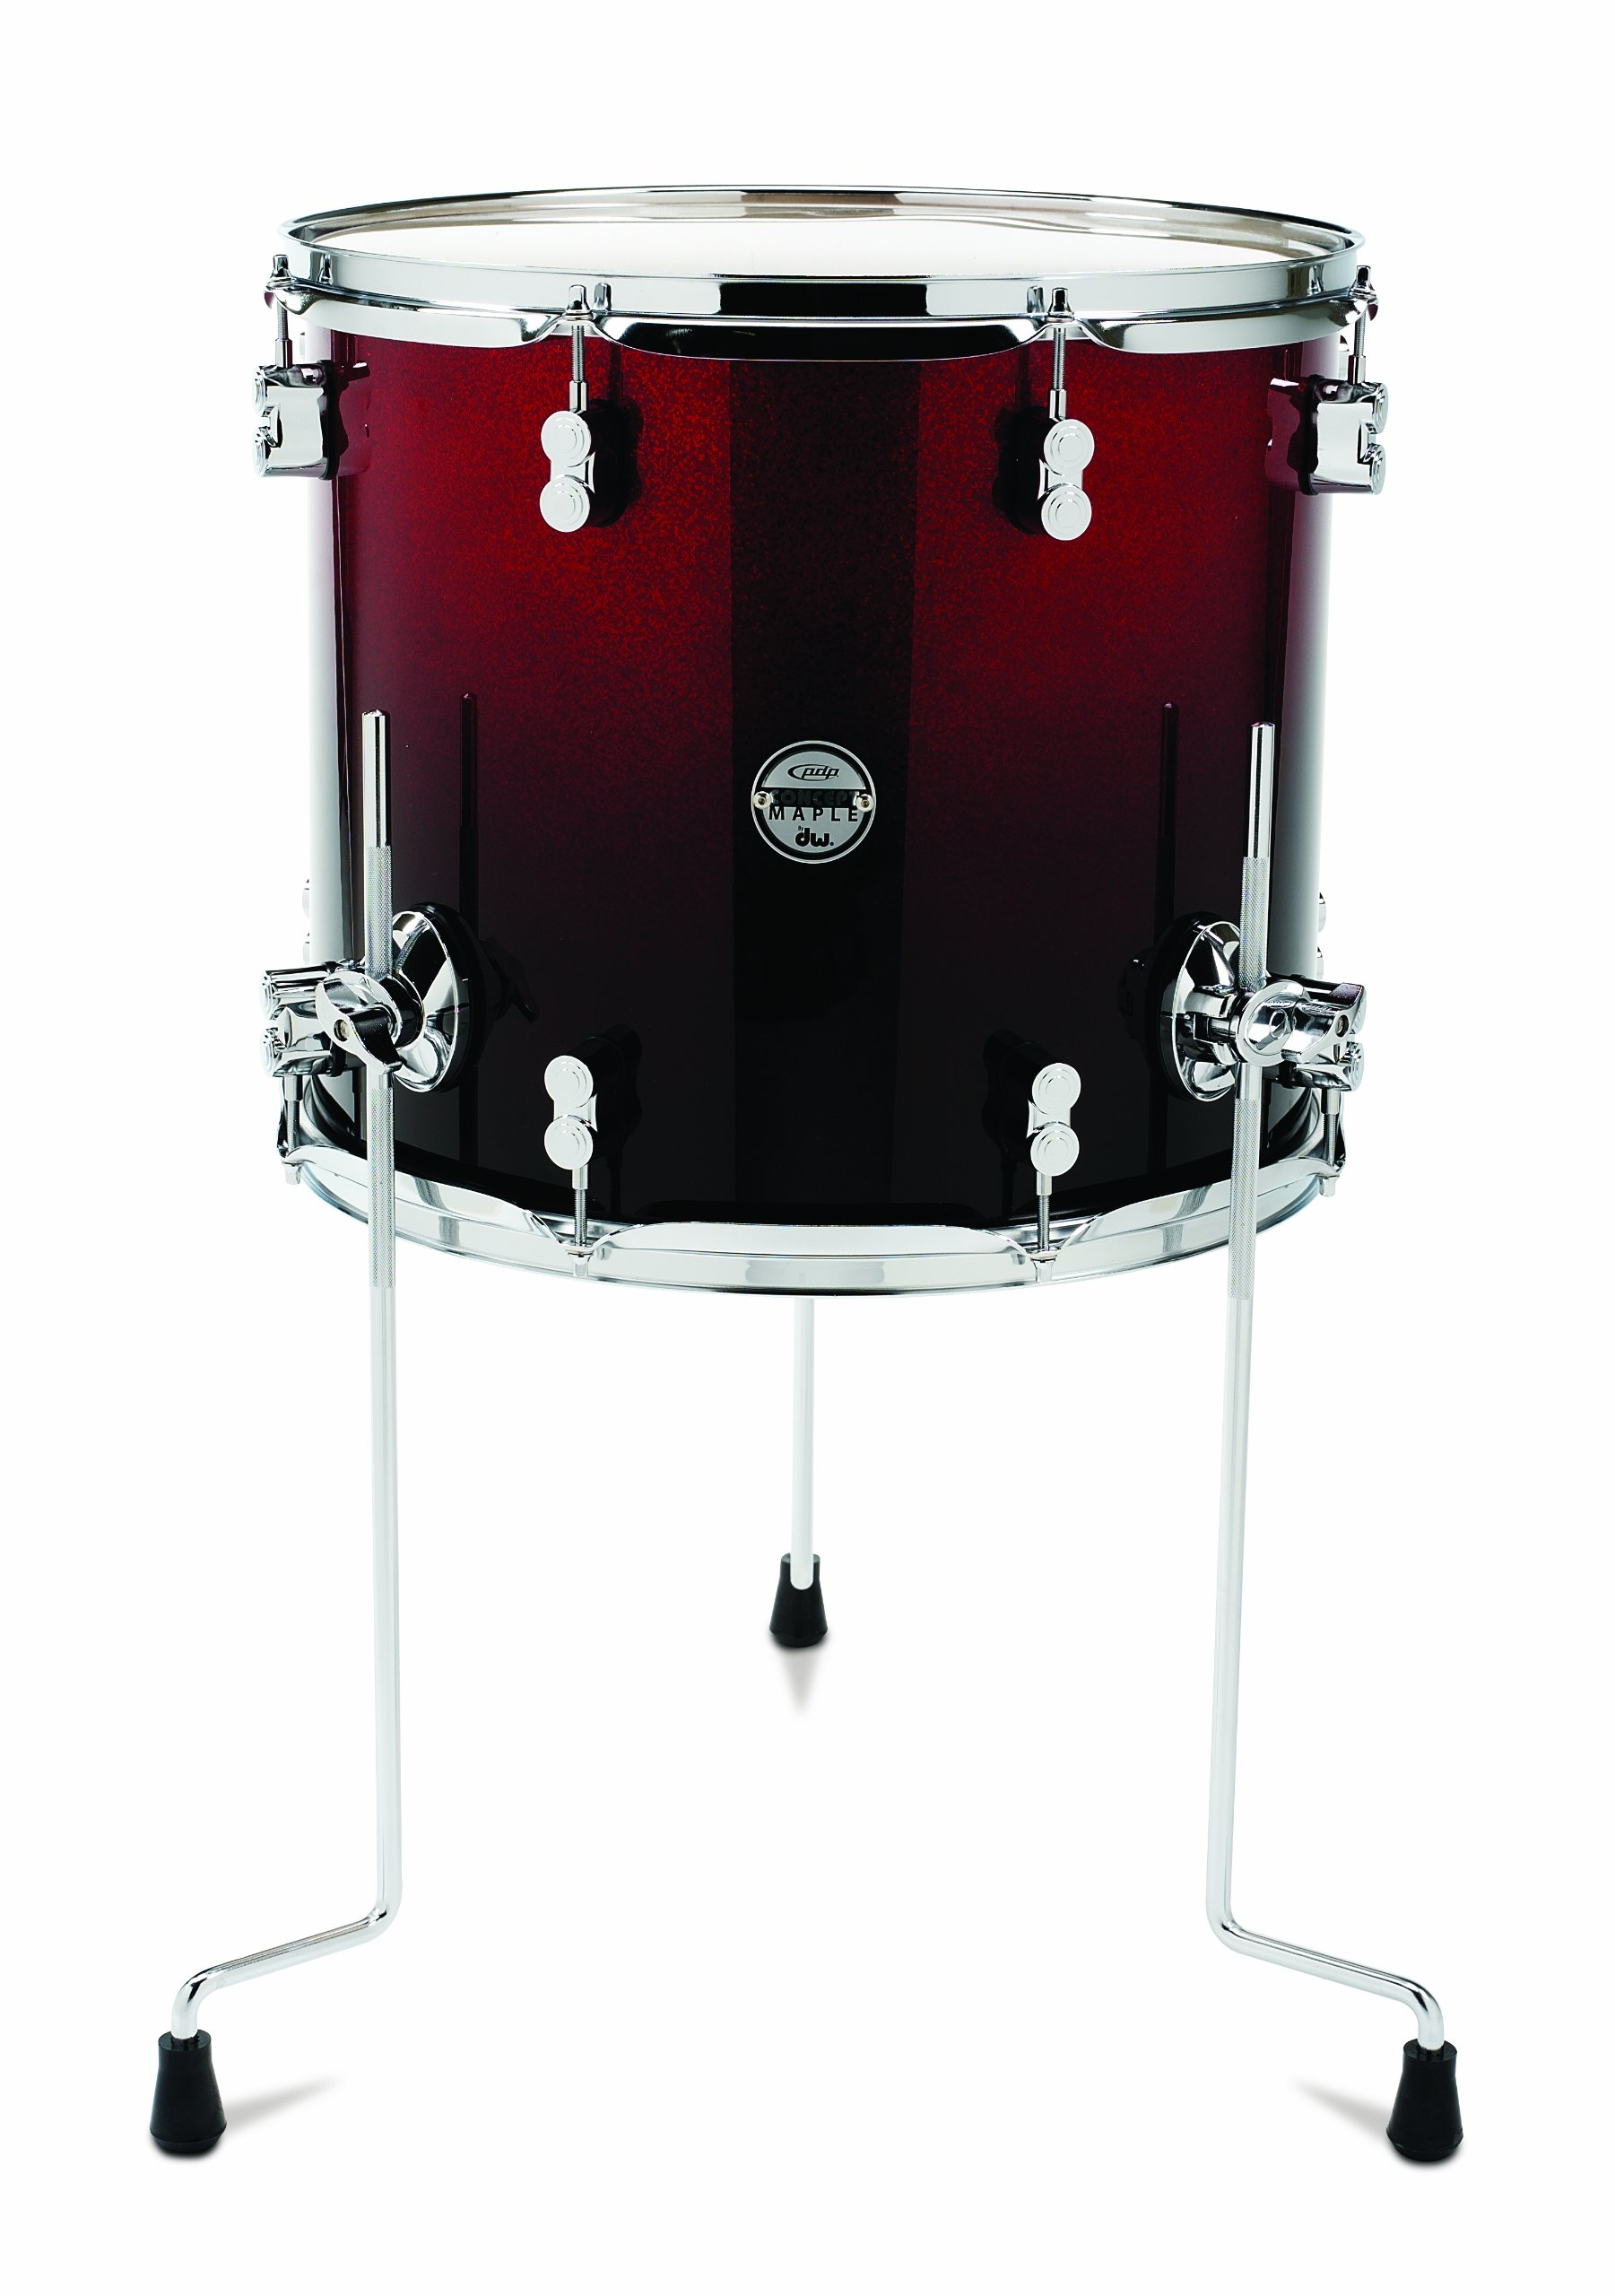 Pacific Drums PDCM1416TTRB 14 x 16 Inches Floor Tom with Chrome Hardware - Red to Black Fade